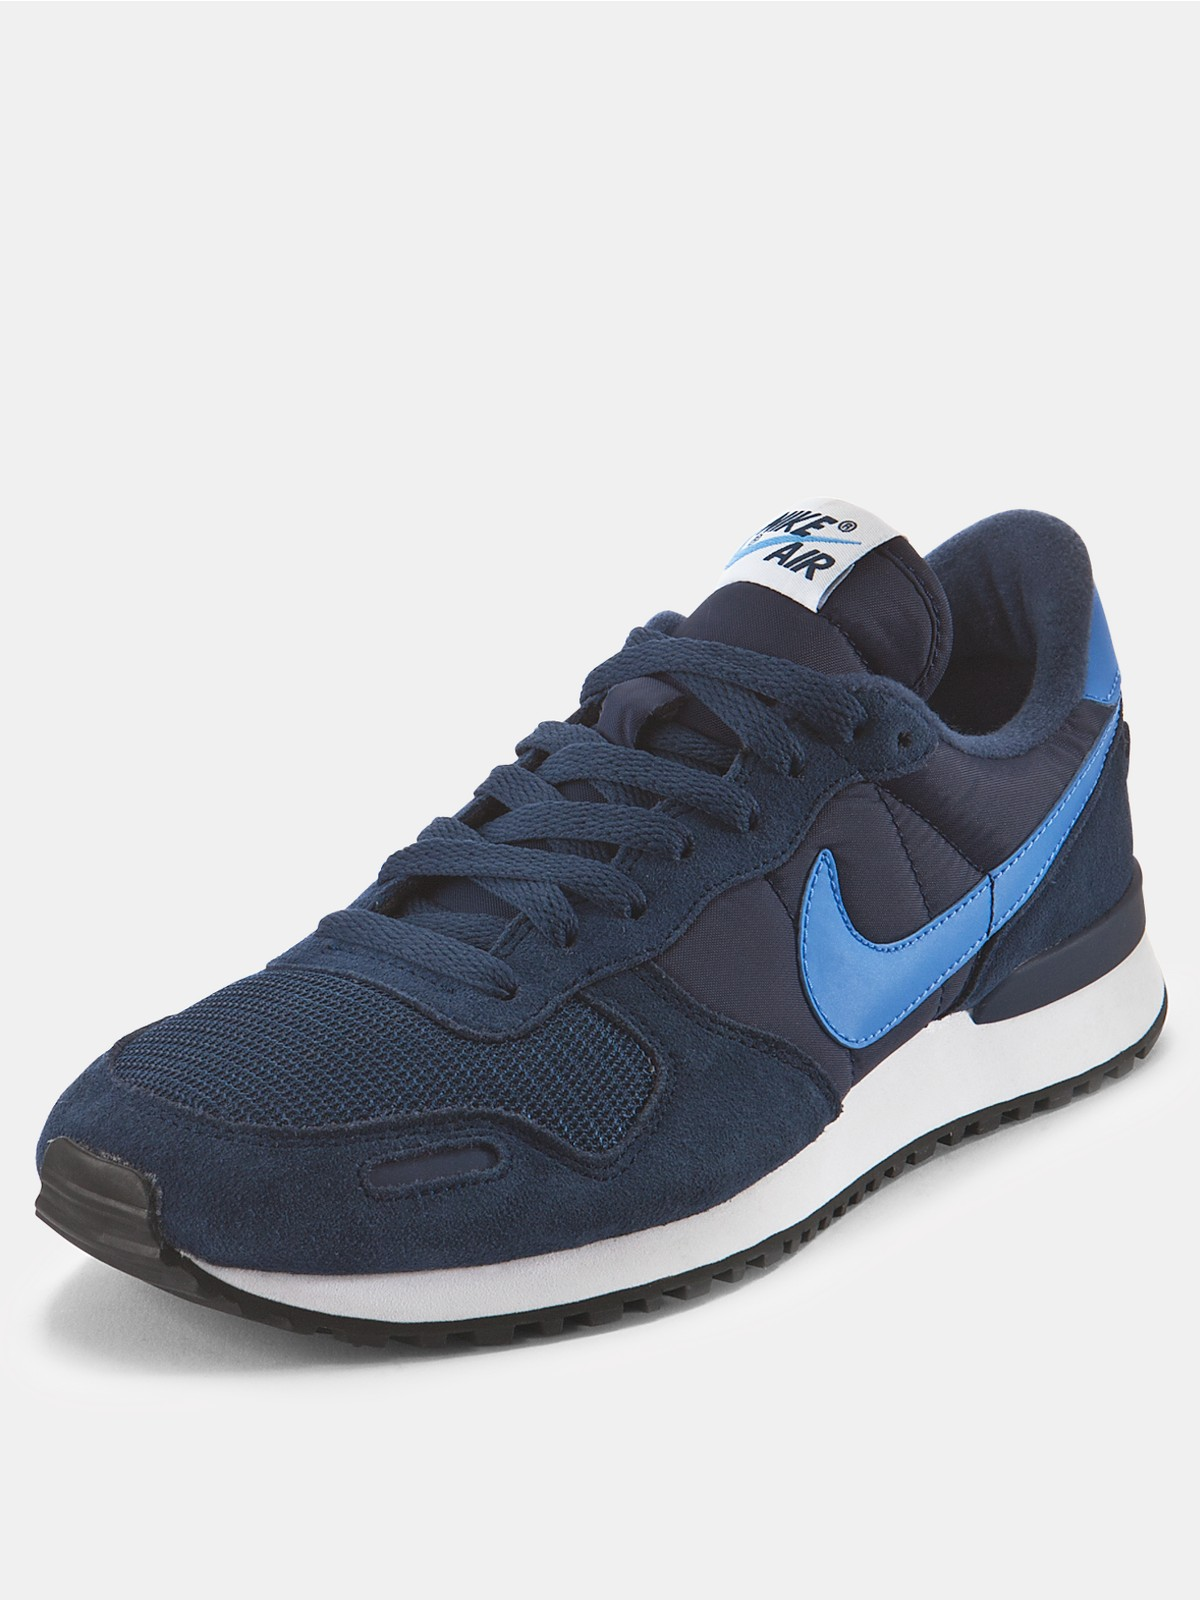 nike air vortex retro mens trainers in blue for men navy. Black Bedroom Furniture Sets. Home Design Ideas